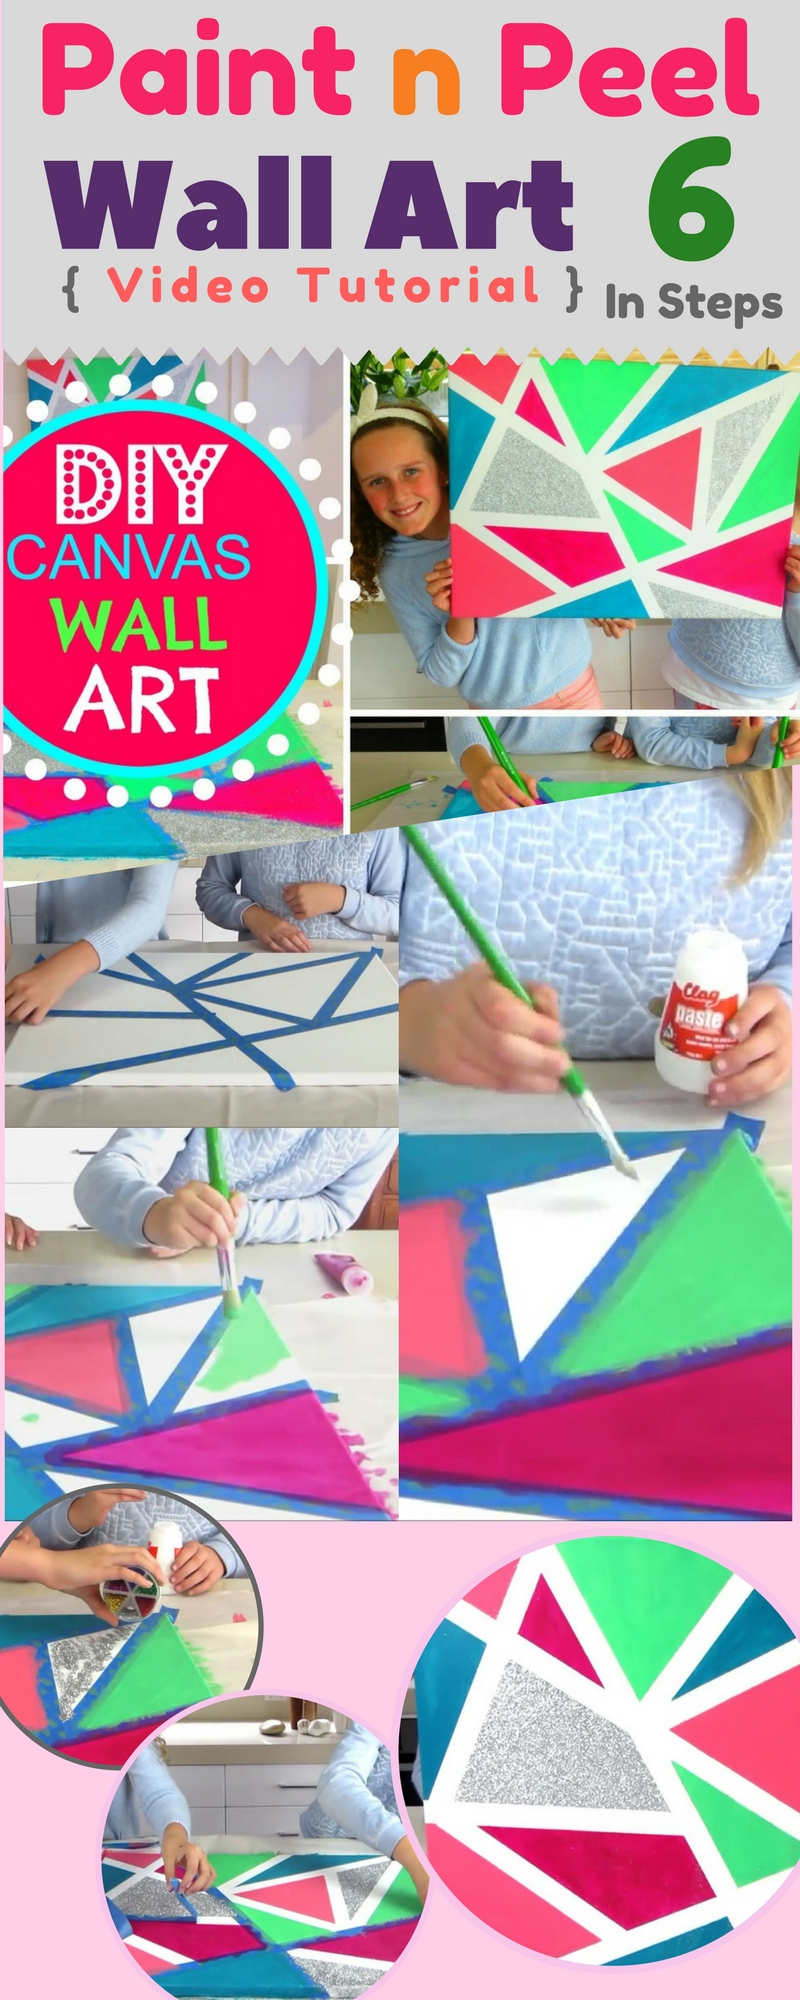 Paint n peel it diy cheap 6 steps effortless canvas wall art video - How to prepare walls for painting in a few easy steps ...